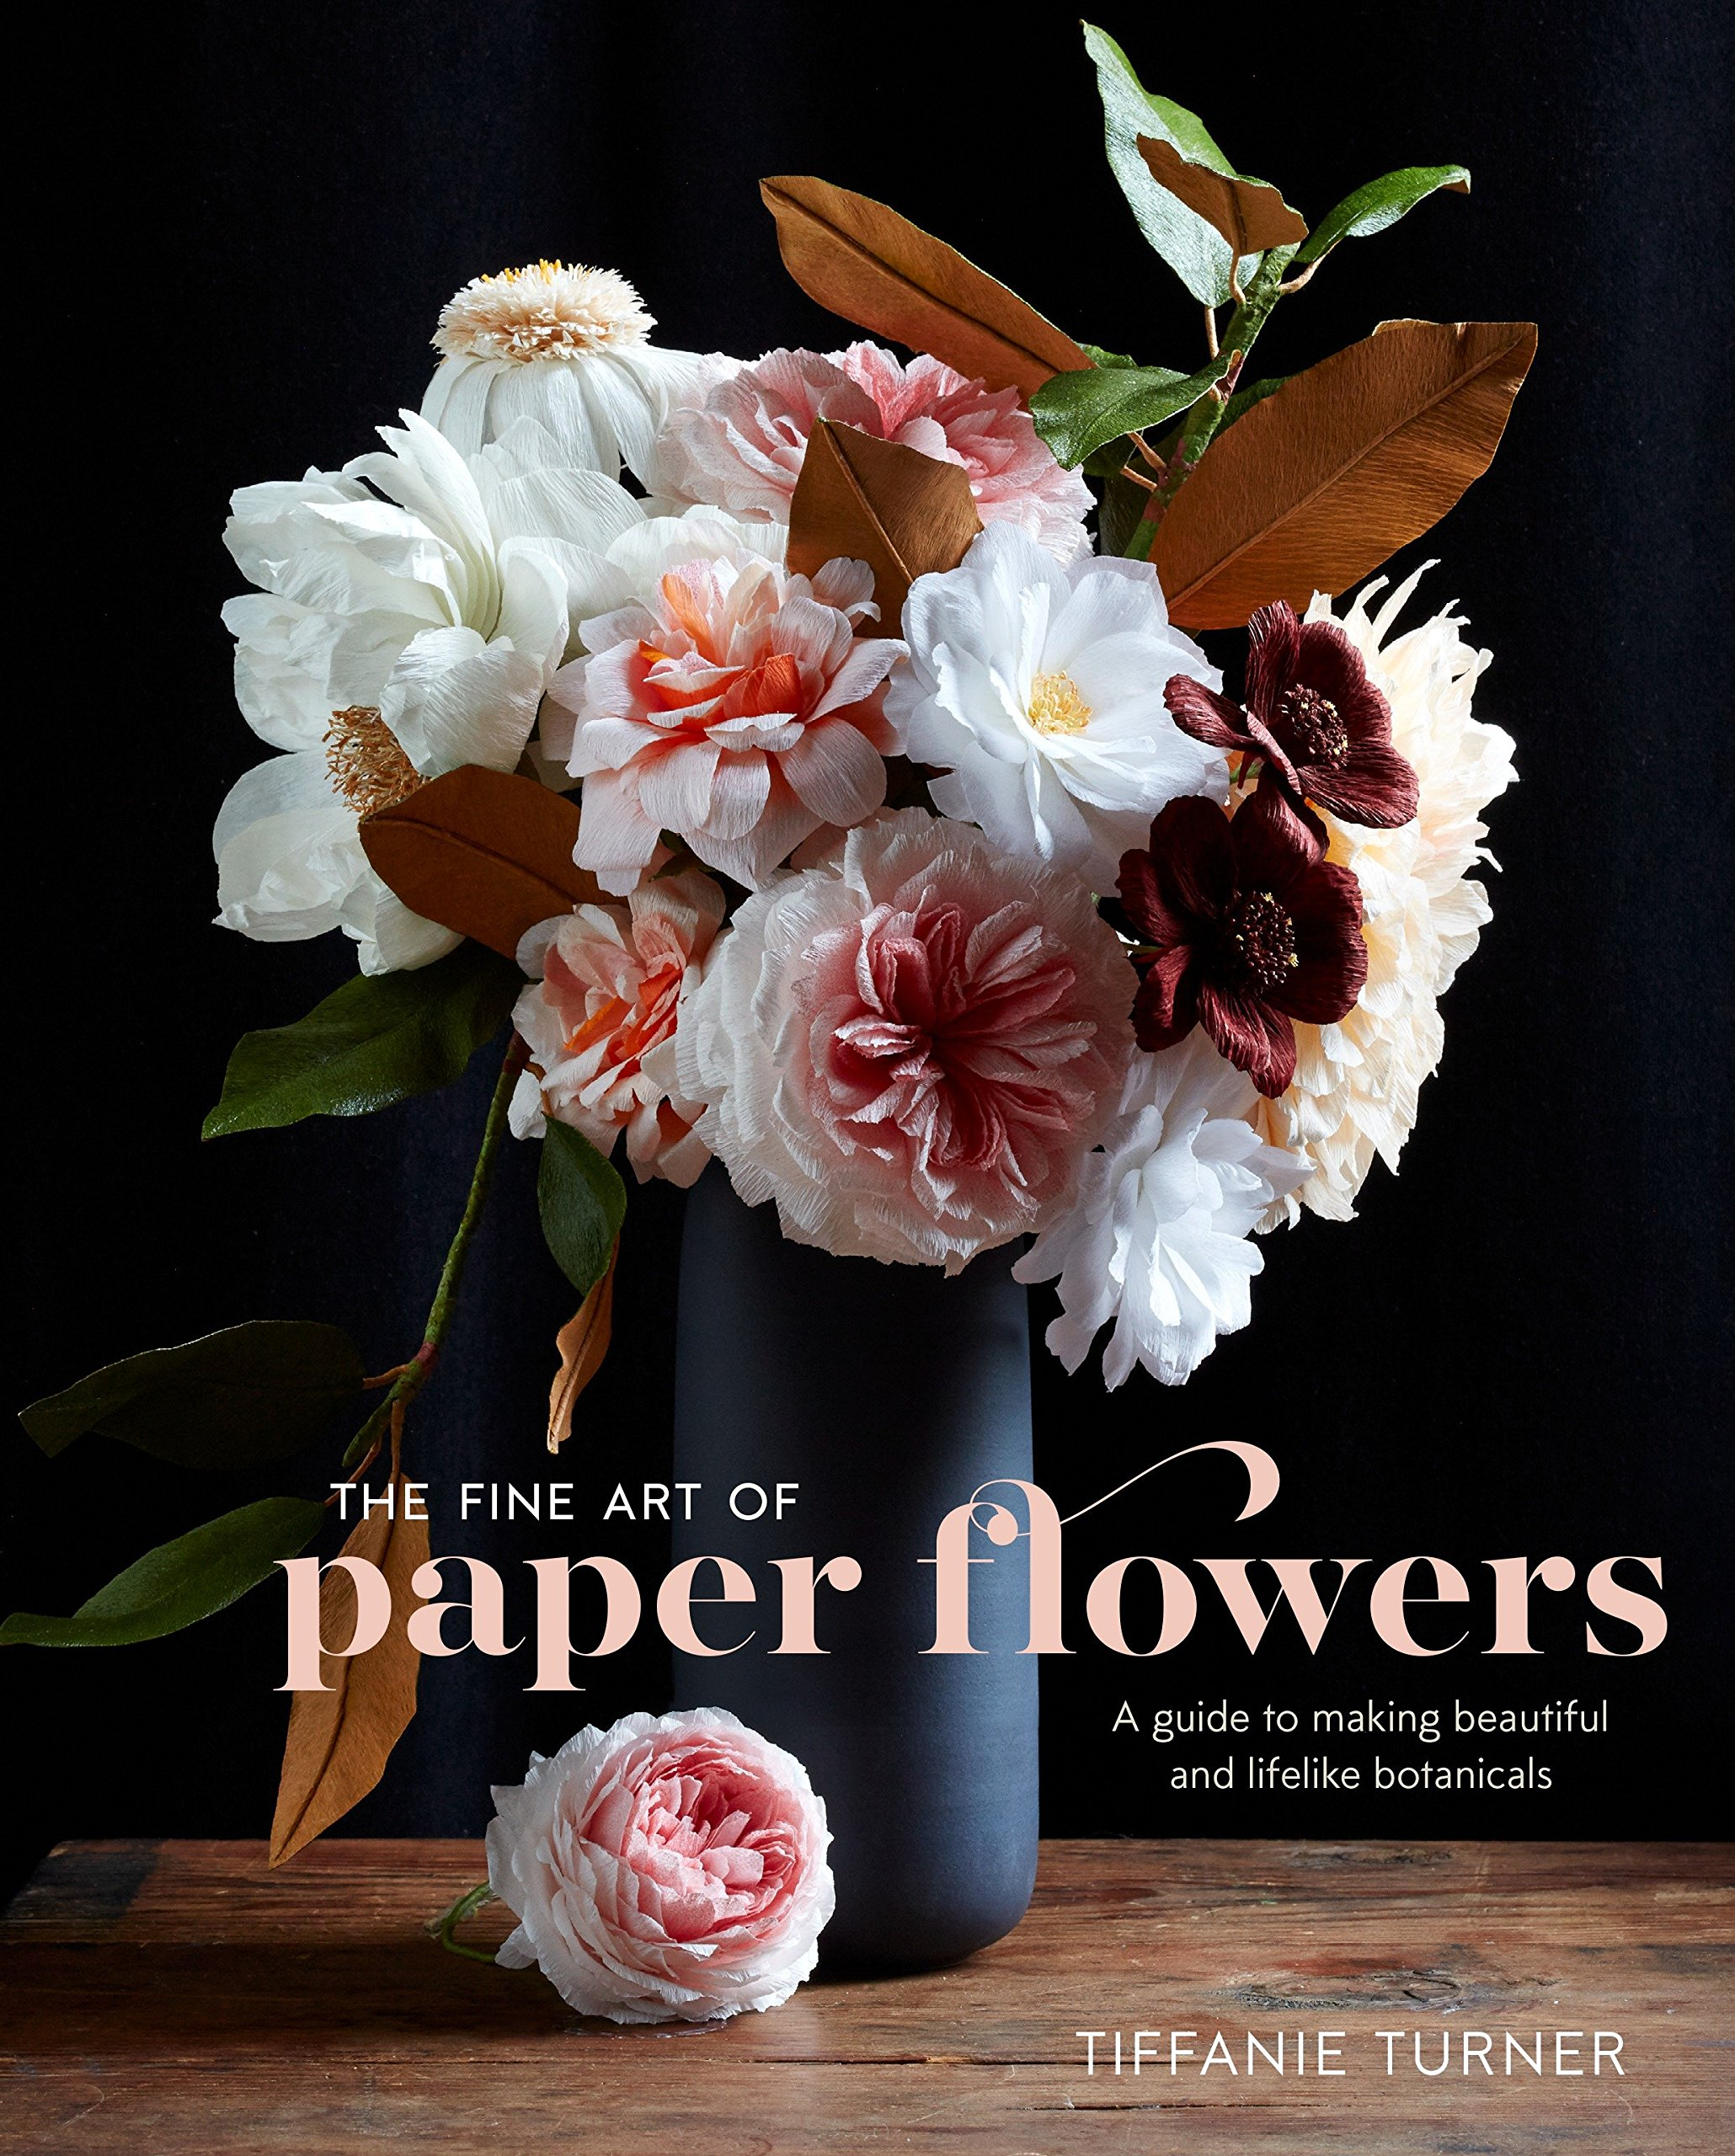 The fine art of paper flowers a guide to making beautiful and the fine art of paper flowers a guide to making beautiful and lifelike botanicals tiffanie turner aya brackett 9780399578373 amazon books izmirmasajfo